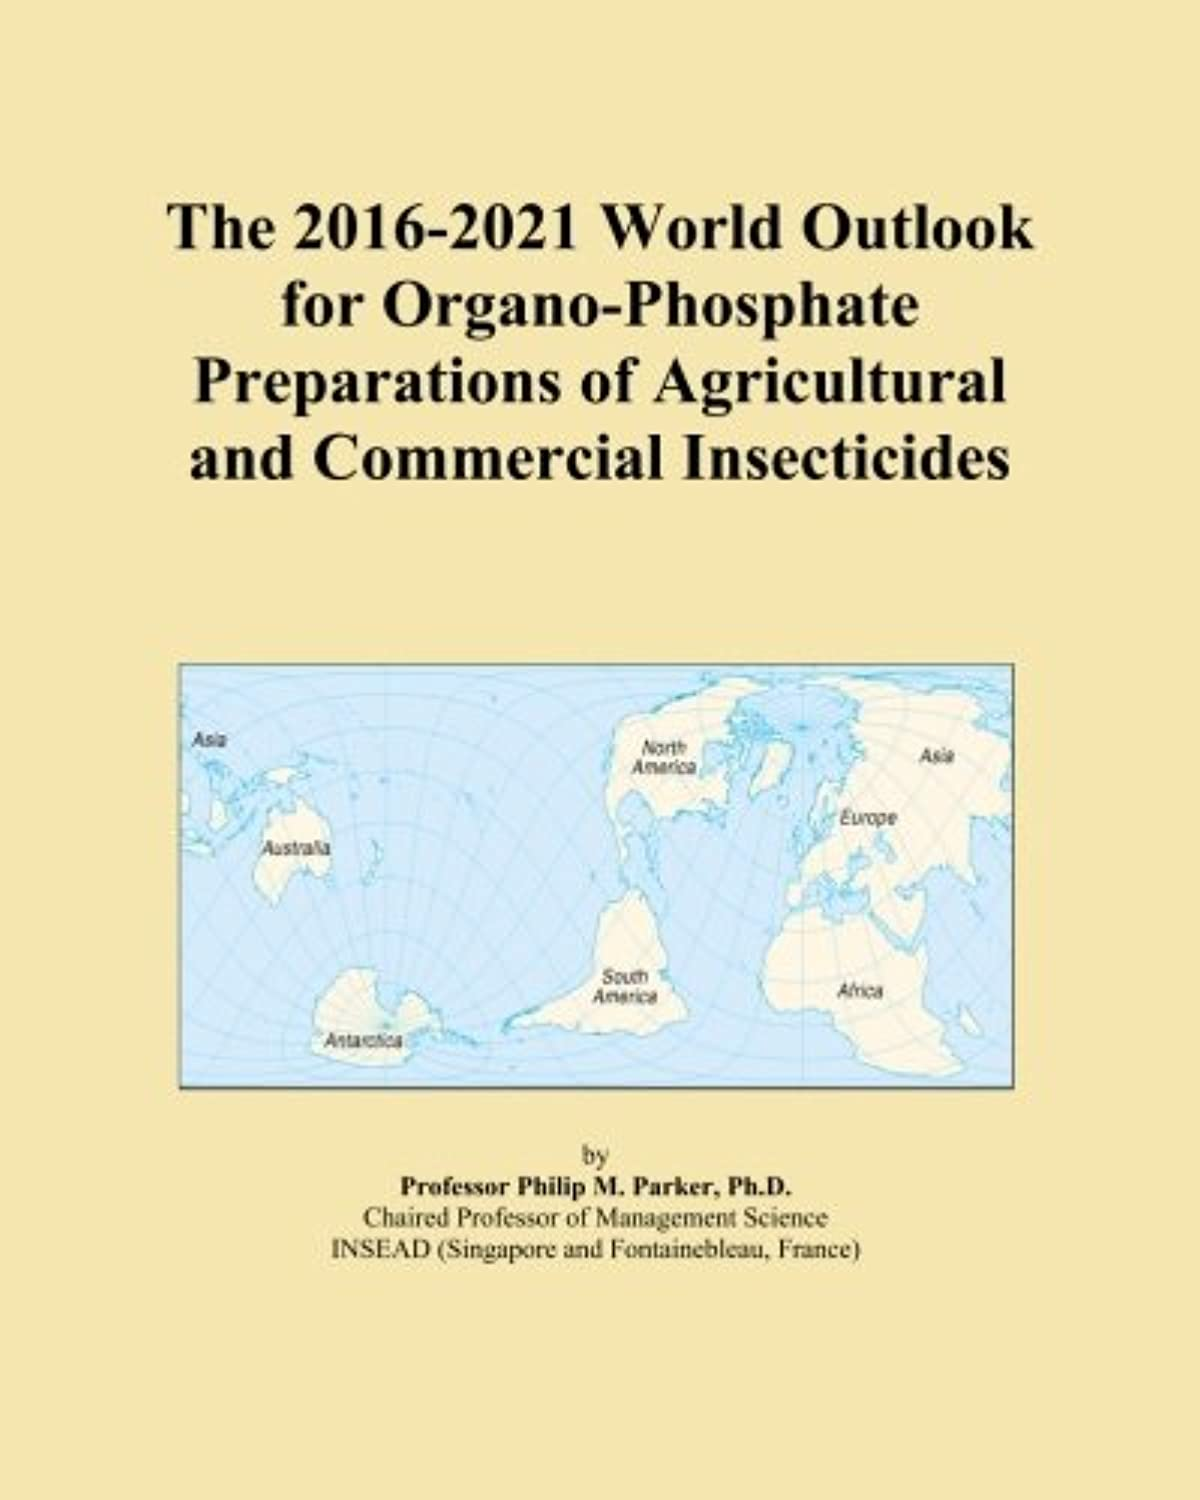 The 2016-2021 World Outlook for Organo-Phosphate Preparations of Agricultural and Commercial Insecticides